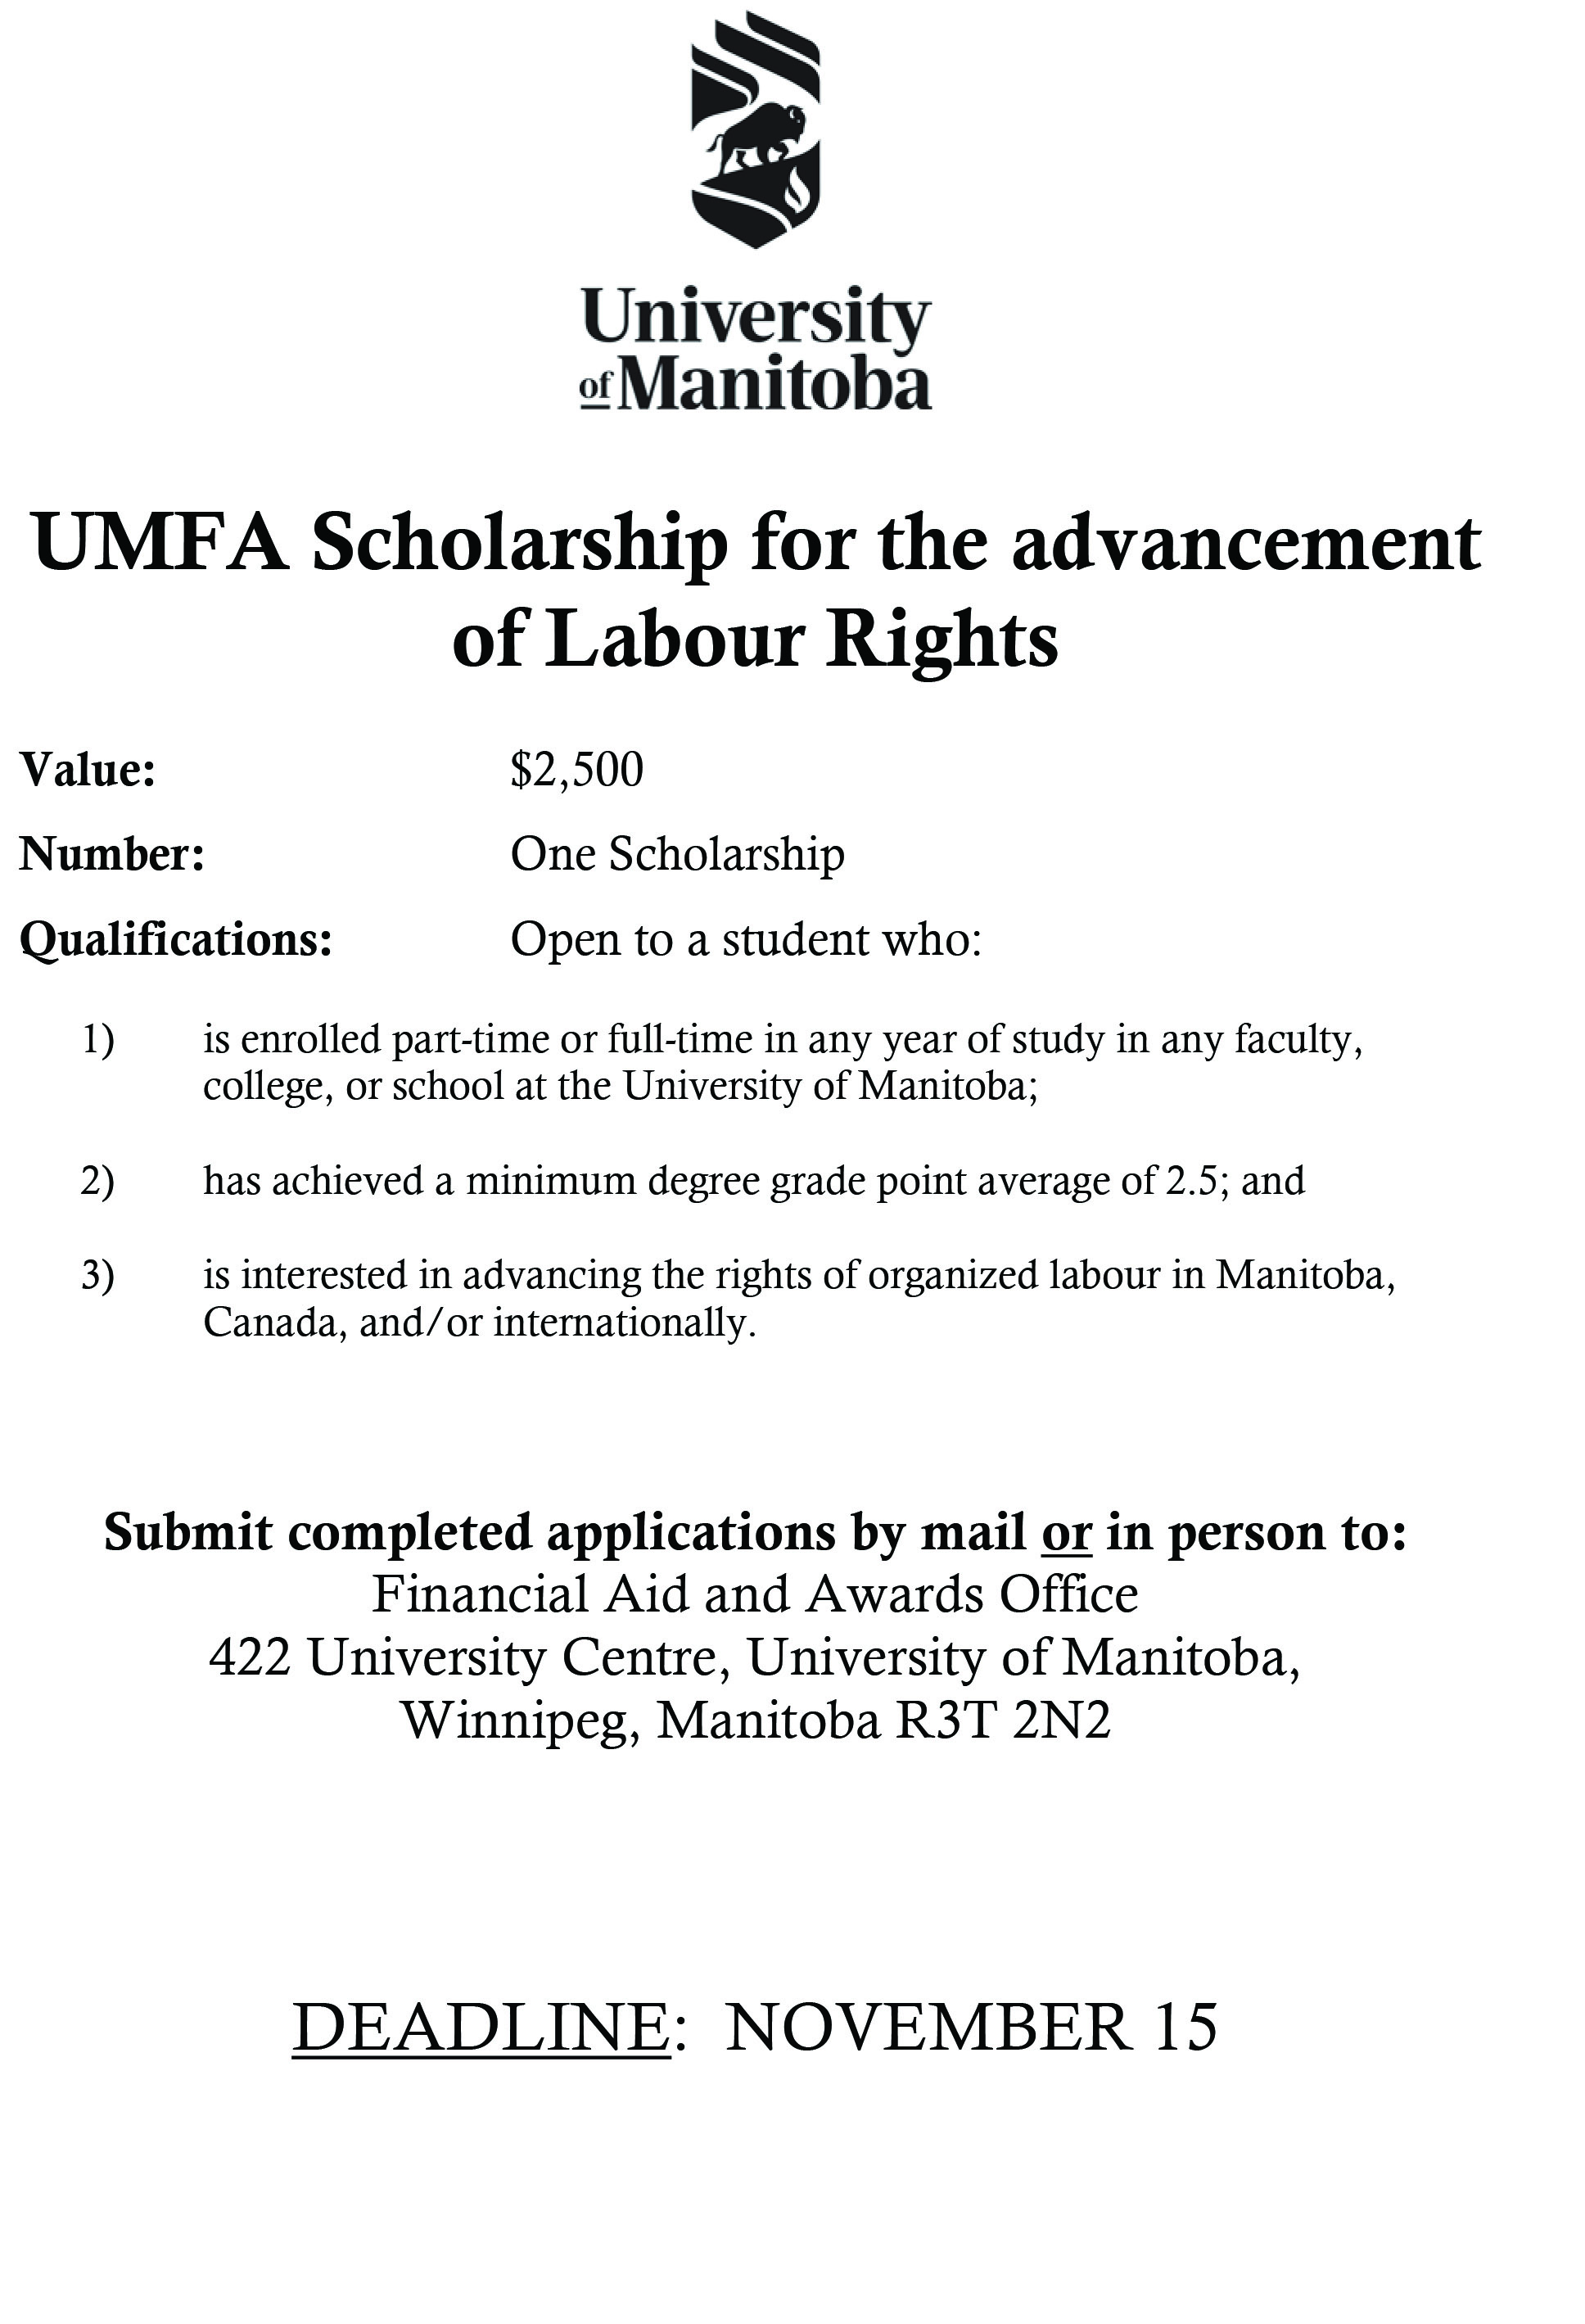 UMFA Scholarship for the Advancement of Labour Rights